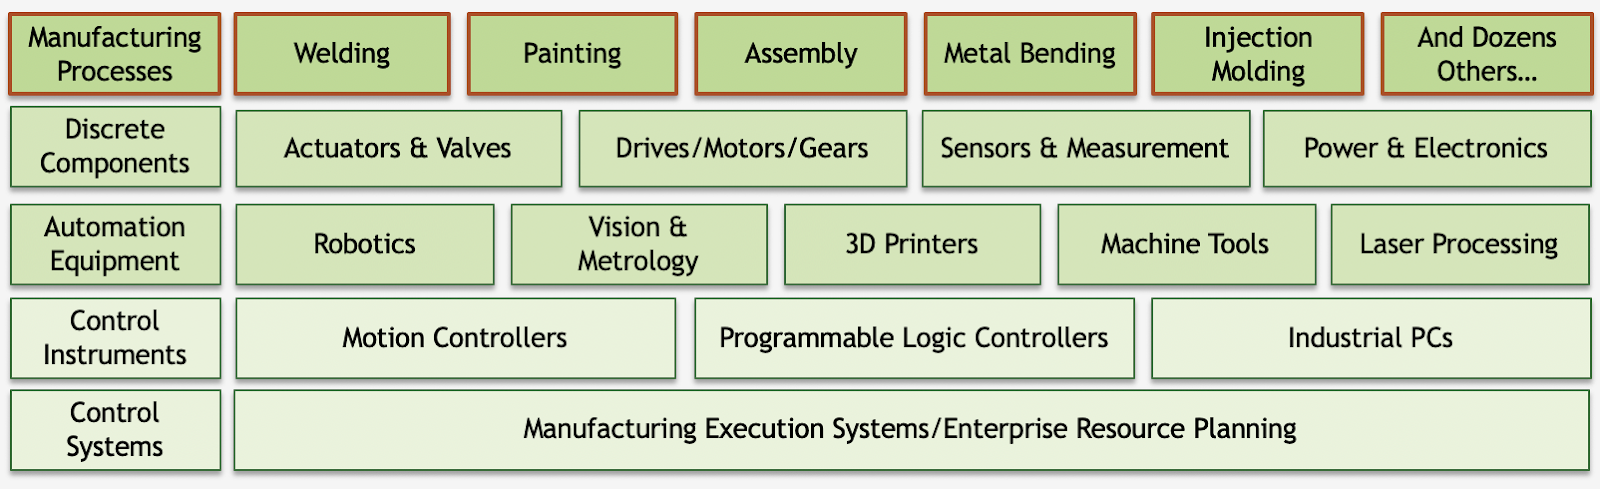 High-level view of factory automation steps and tools, courtesy of my colleague Alberto Moel.